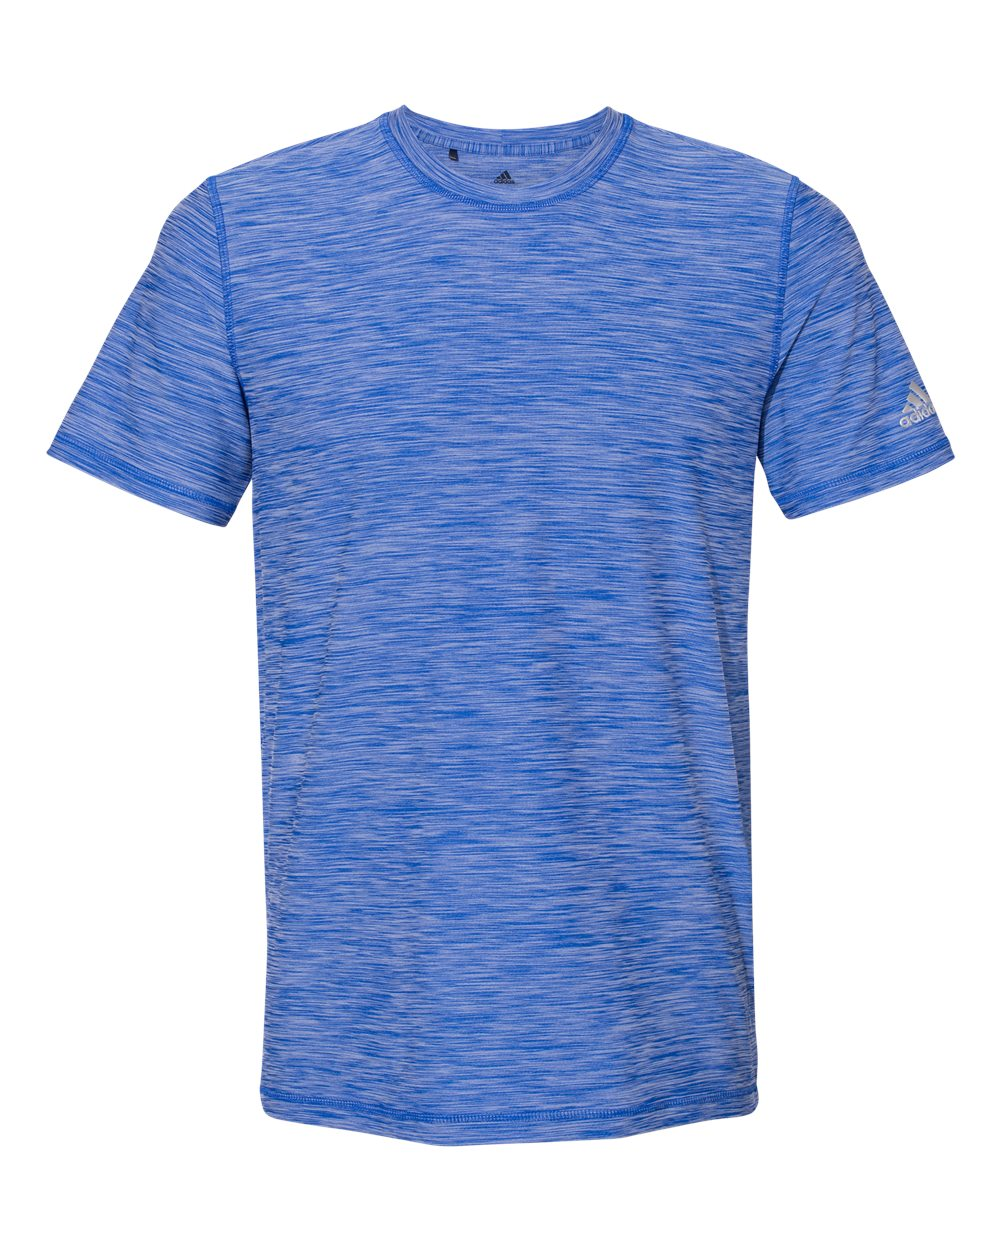 click to view Collegiate Royal Heather